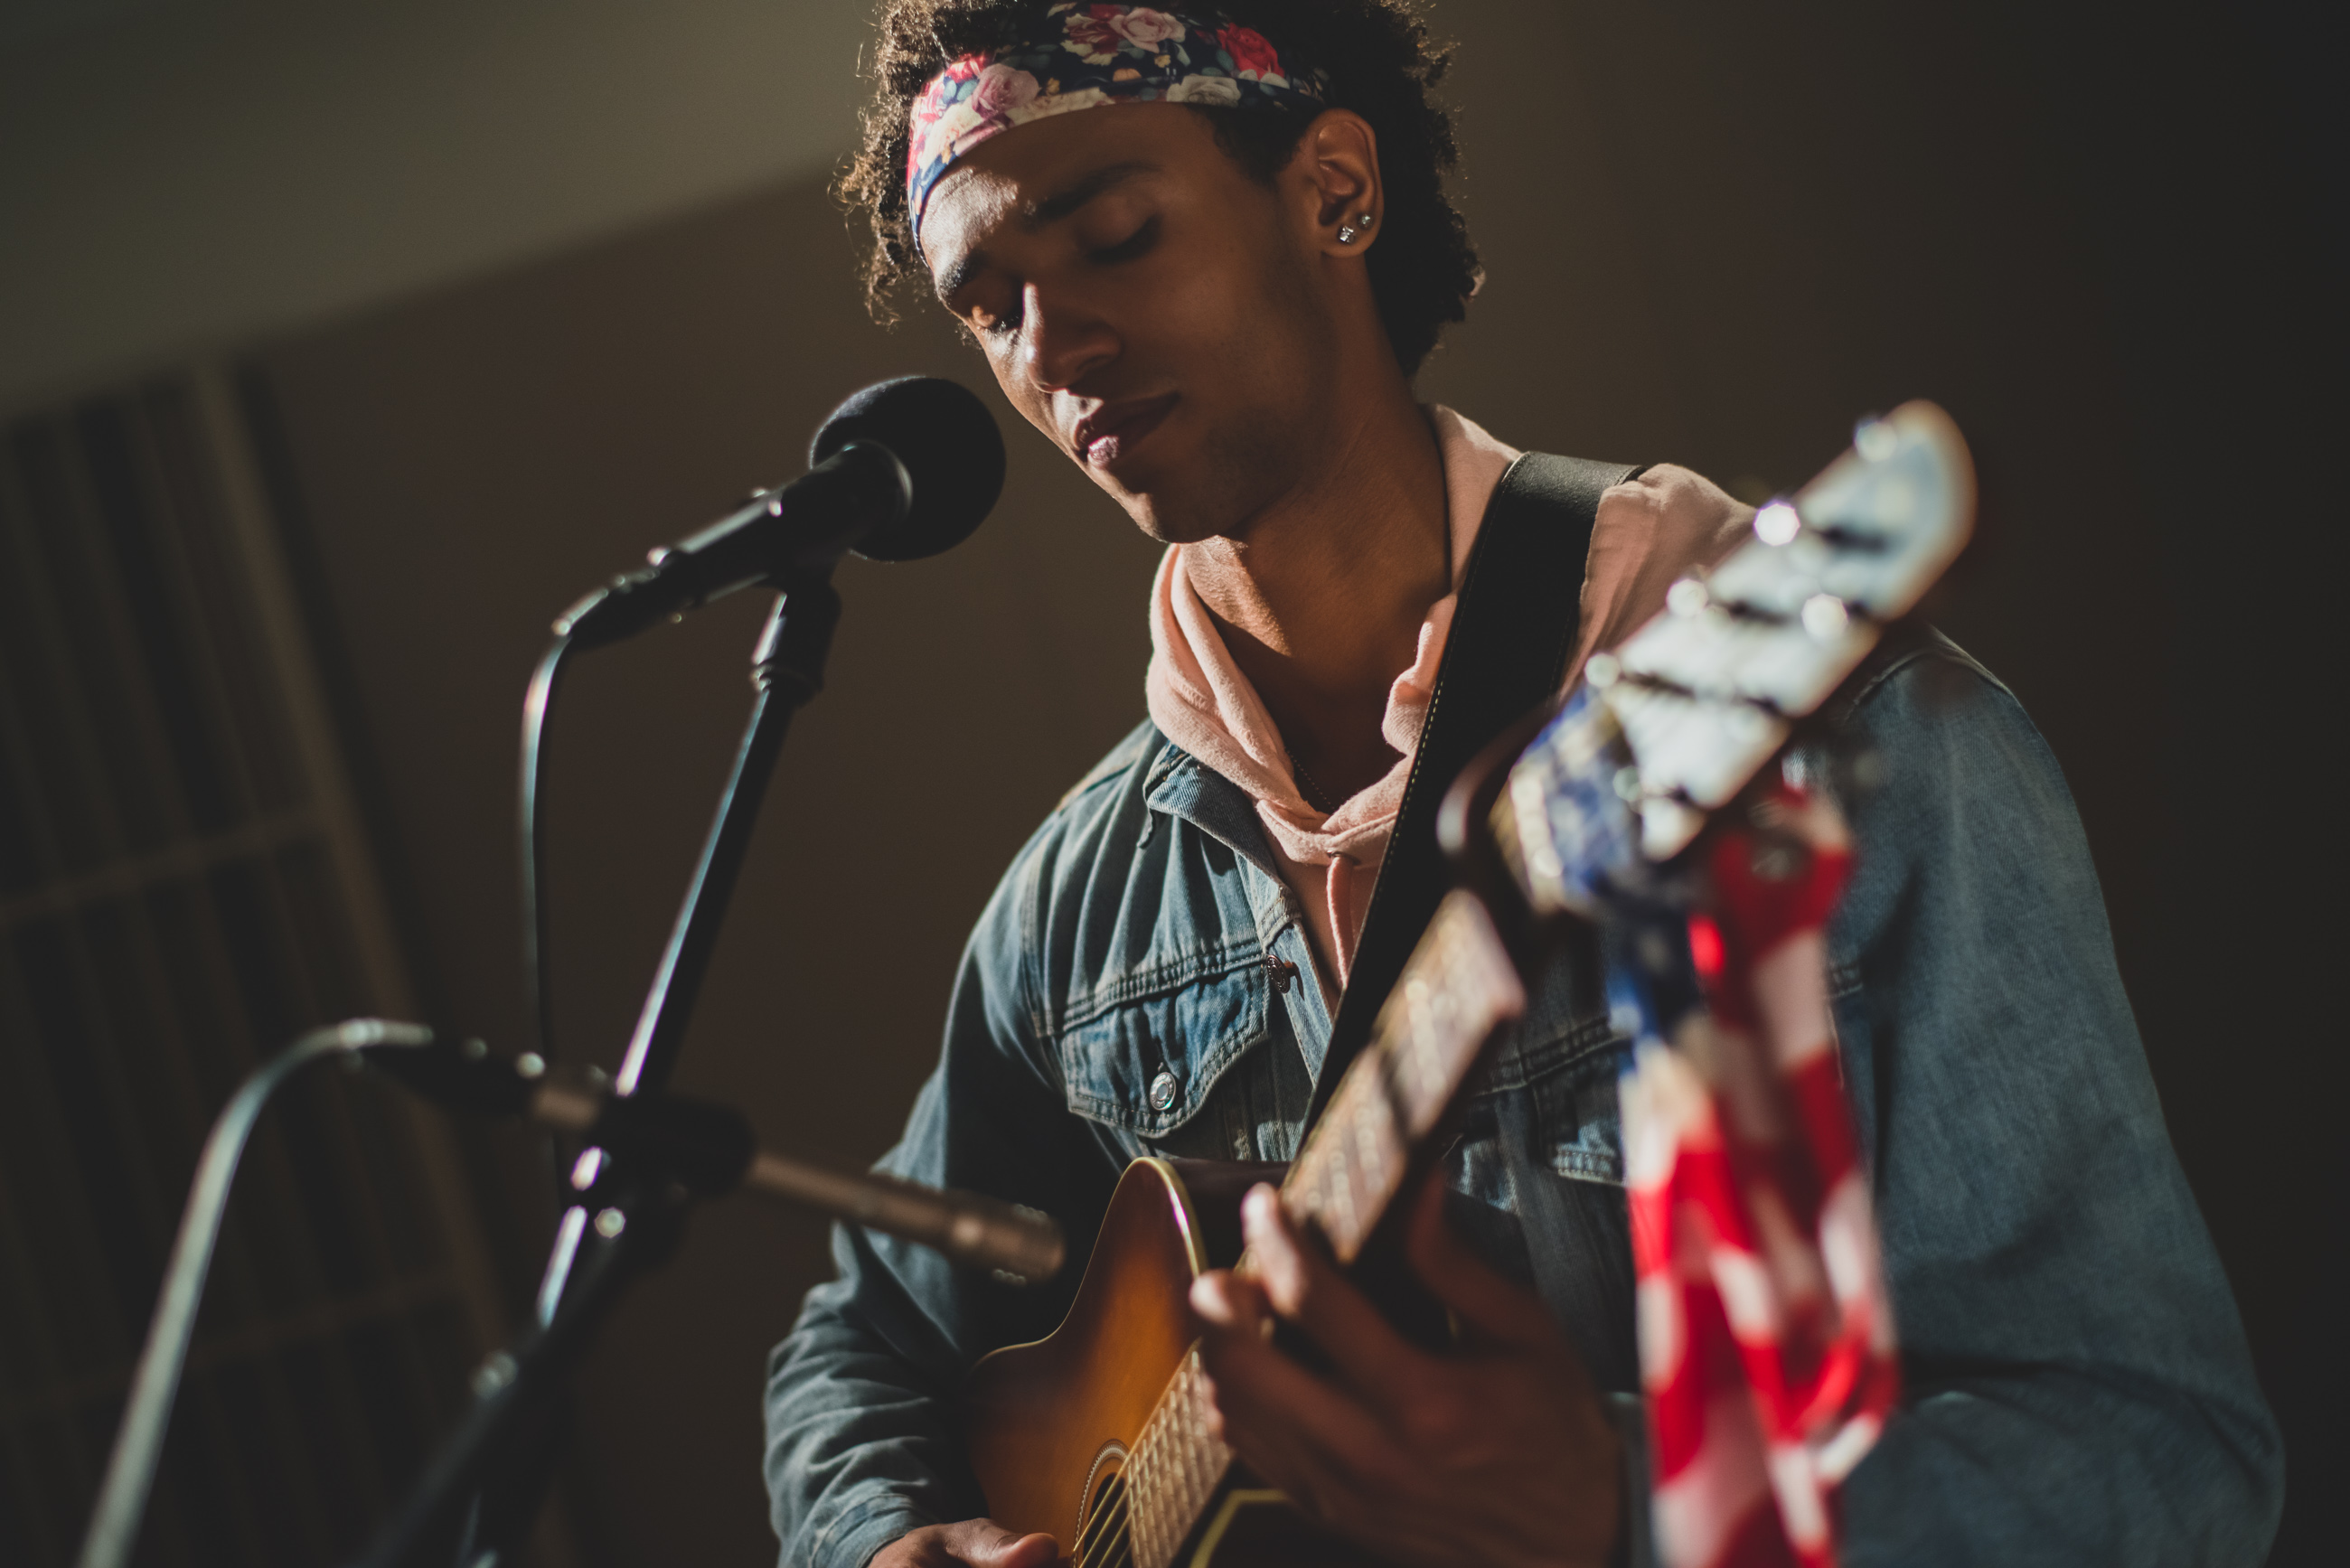 Cory Dandy performing in the WITF Music studio.